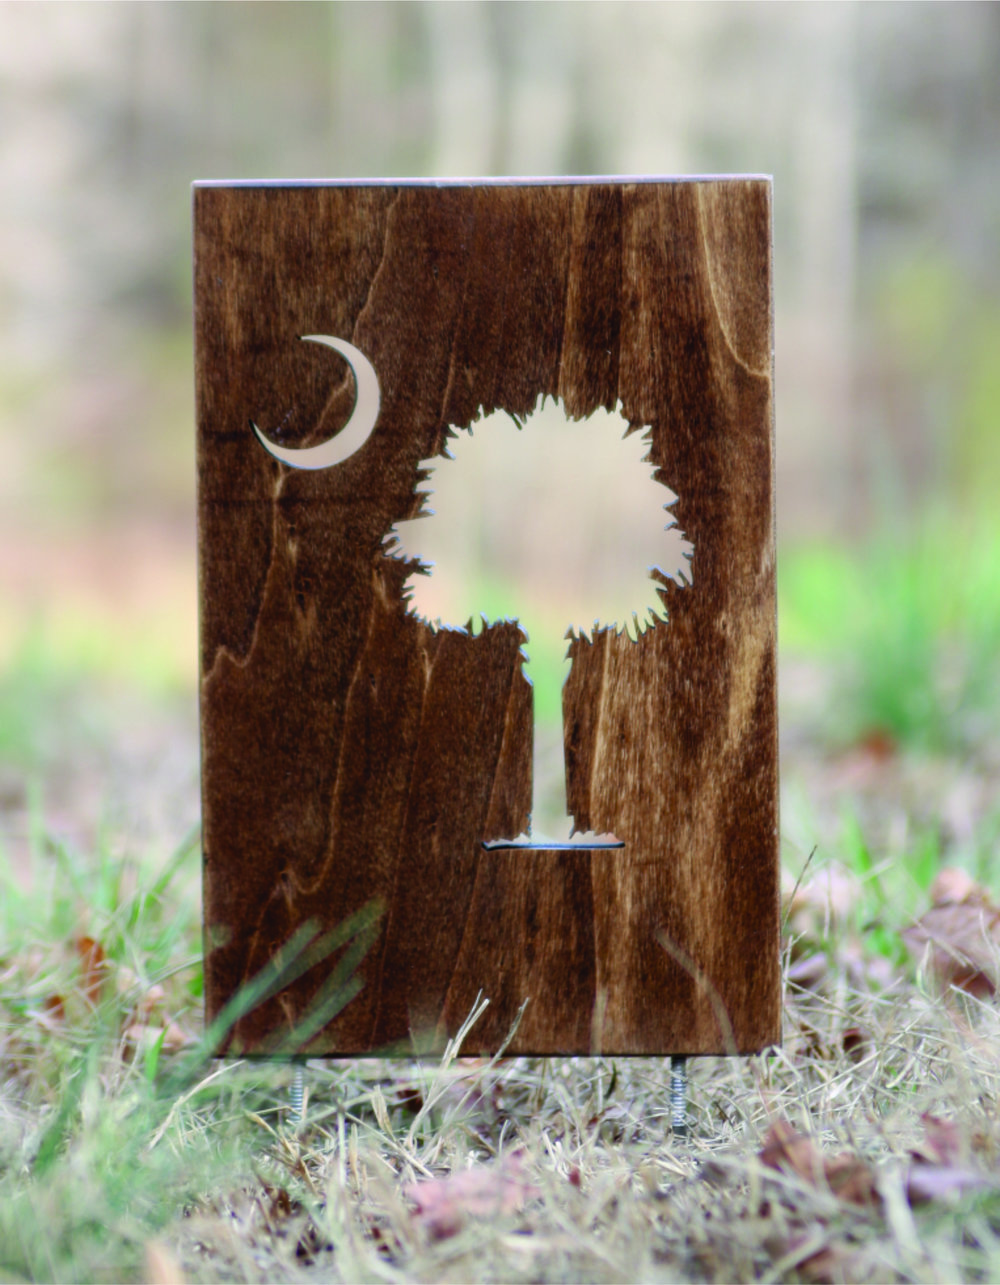 Tee Marker Cutout w/ spikes - $41 (per set of 2)